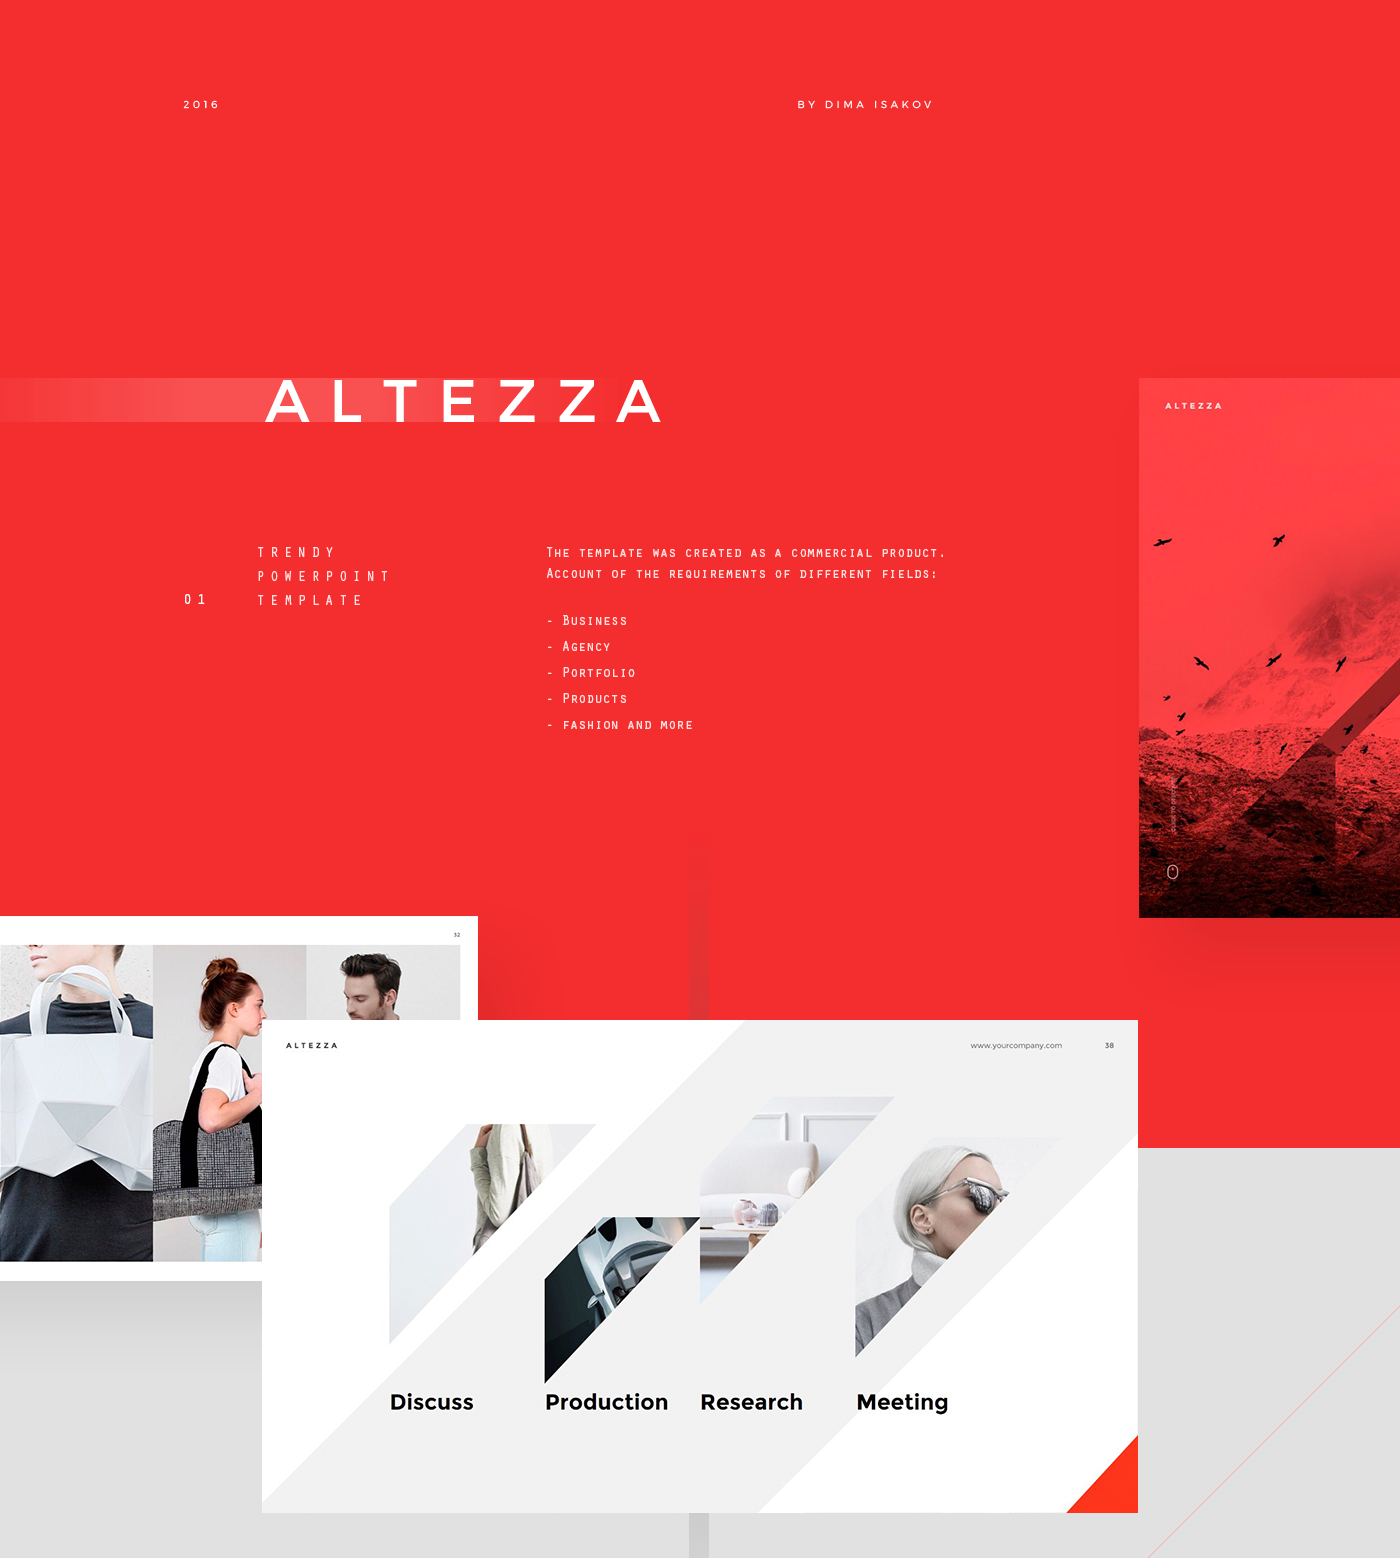 Altezza free presentation template on behance altezza powerpoint templates alramifo Choice Image